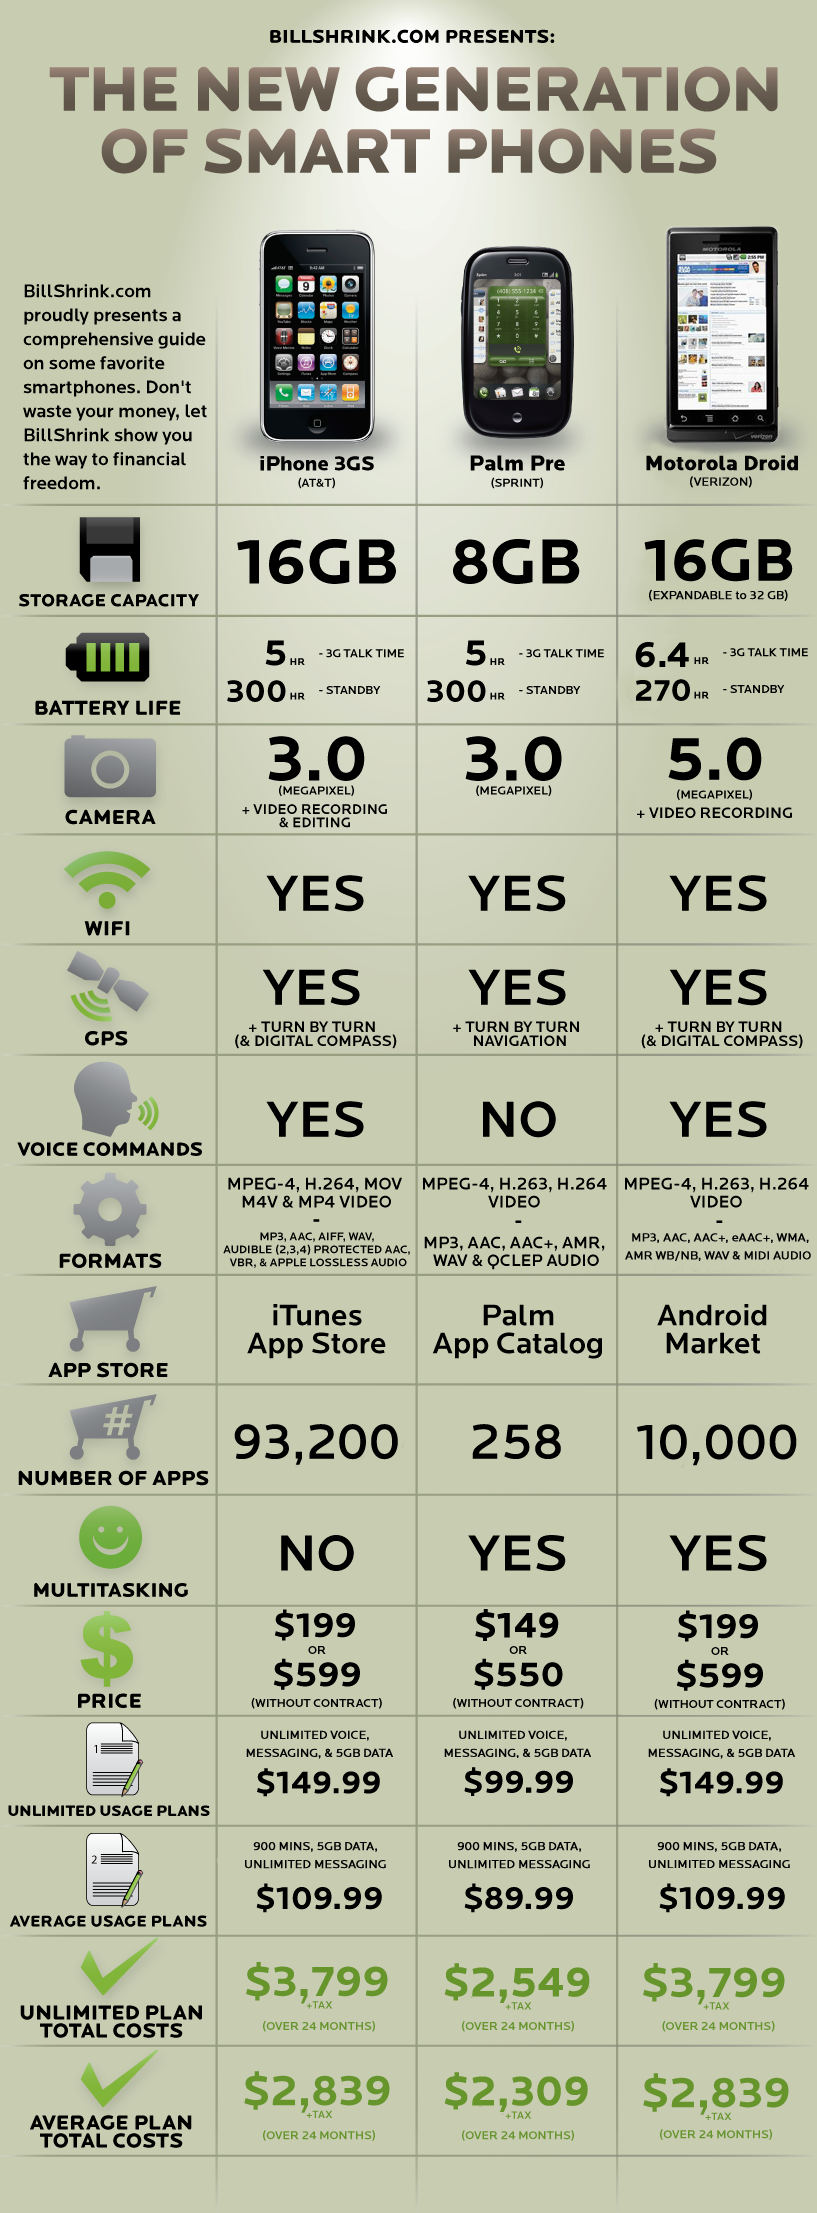 Motorola Droid vs iPhone 3GS vs Palm Pre